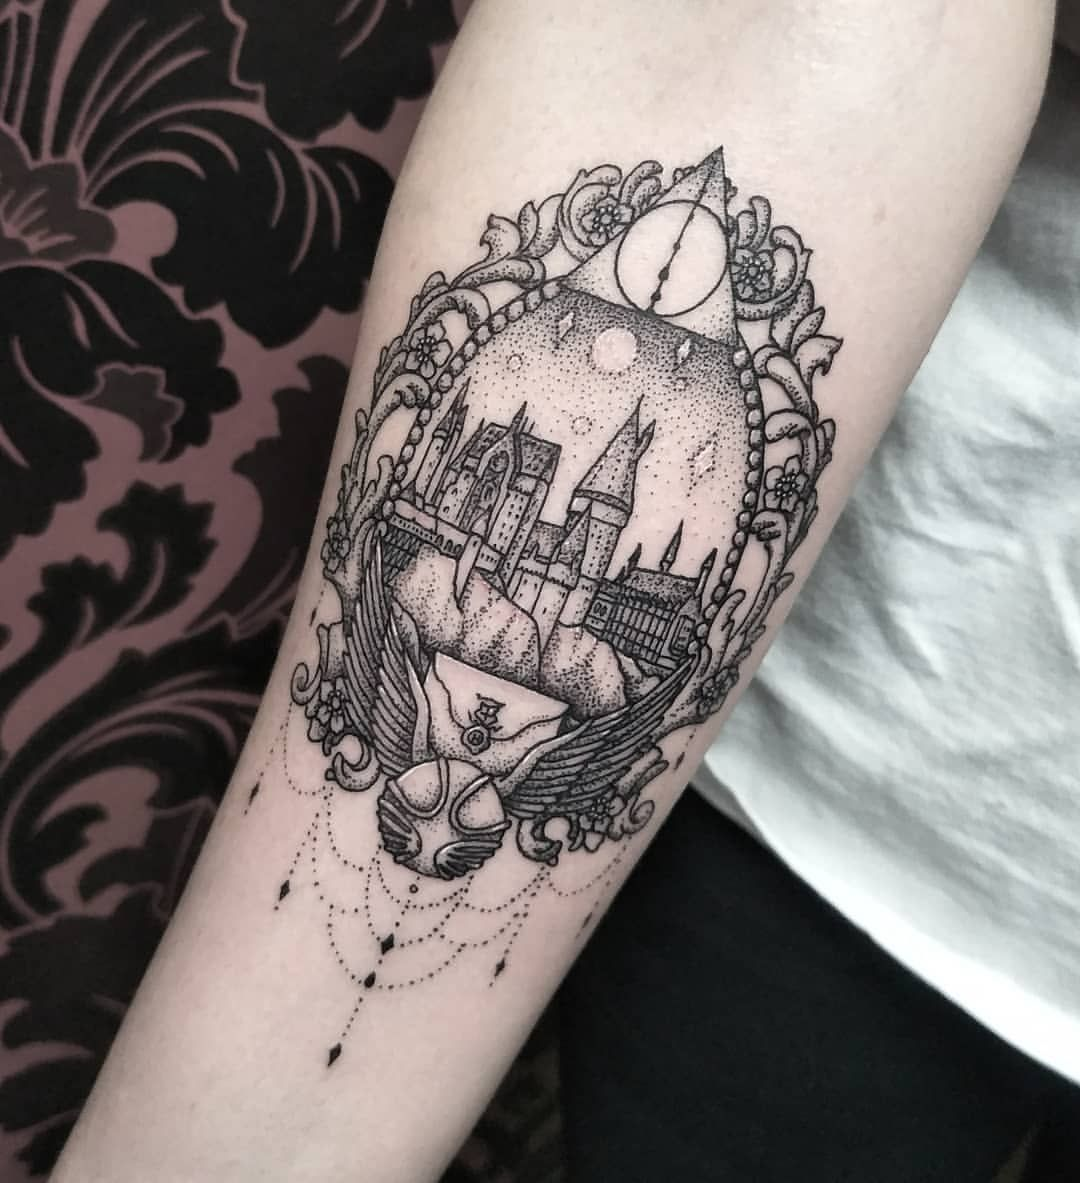 Thoroughly enjoyed making this Hogwarts piece for Rachael